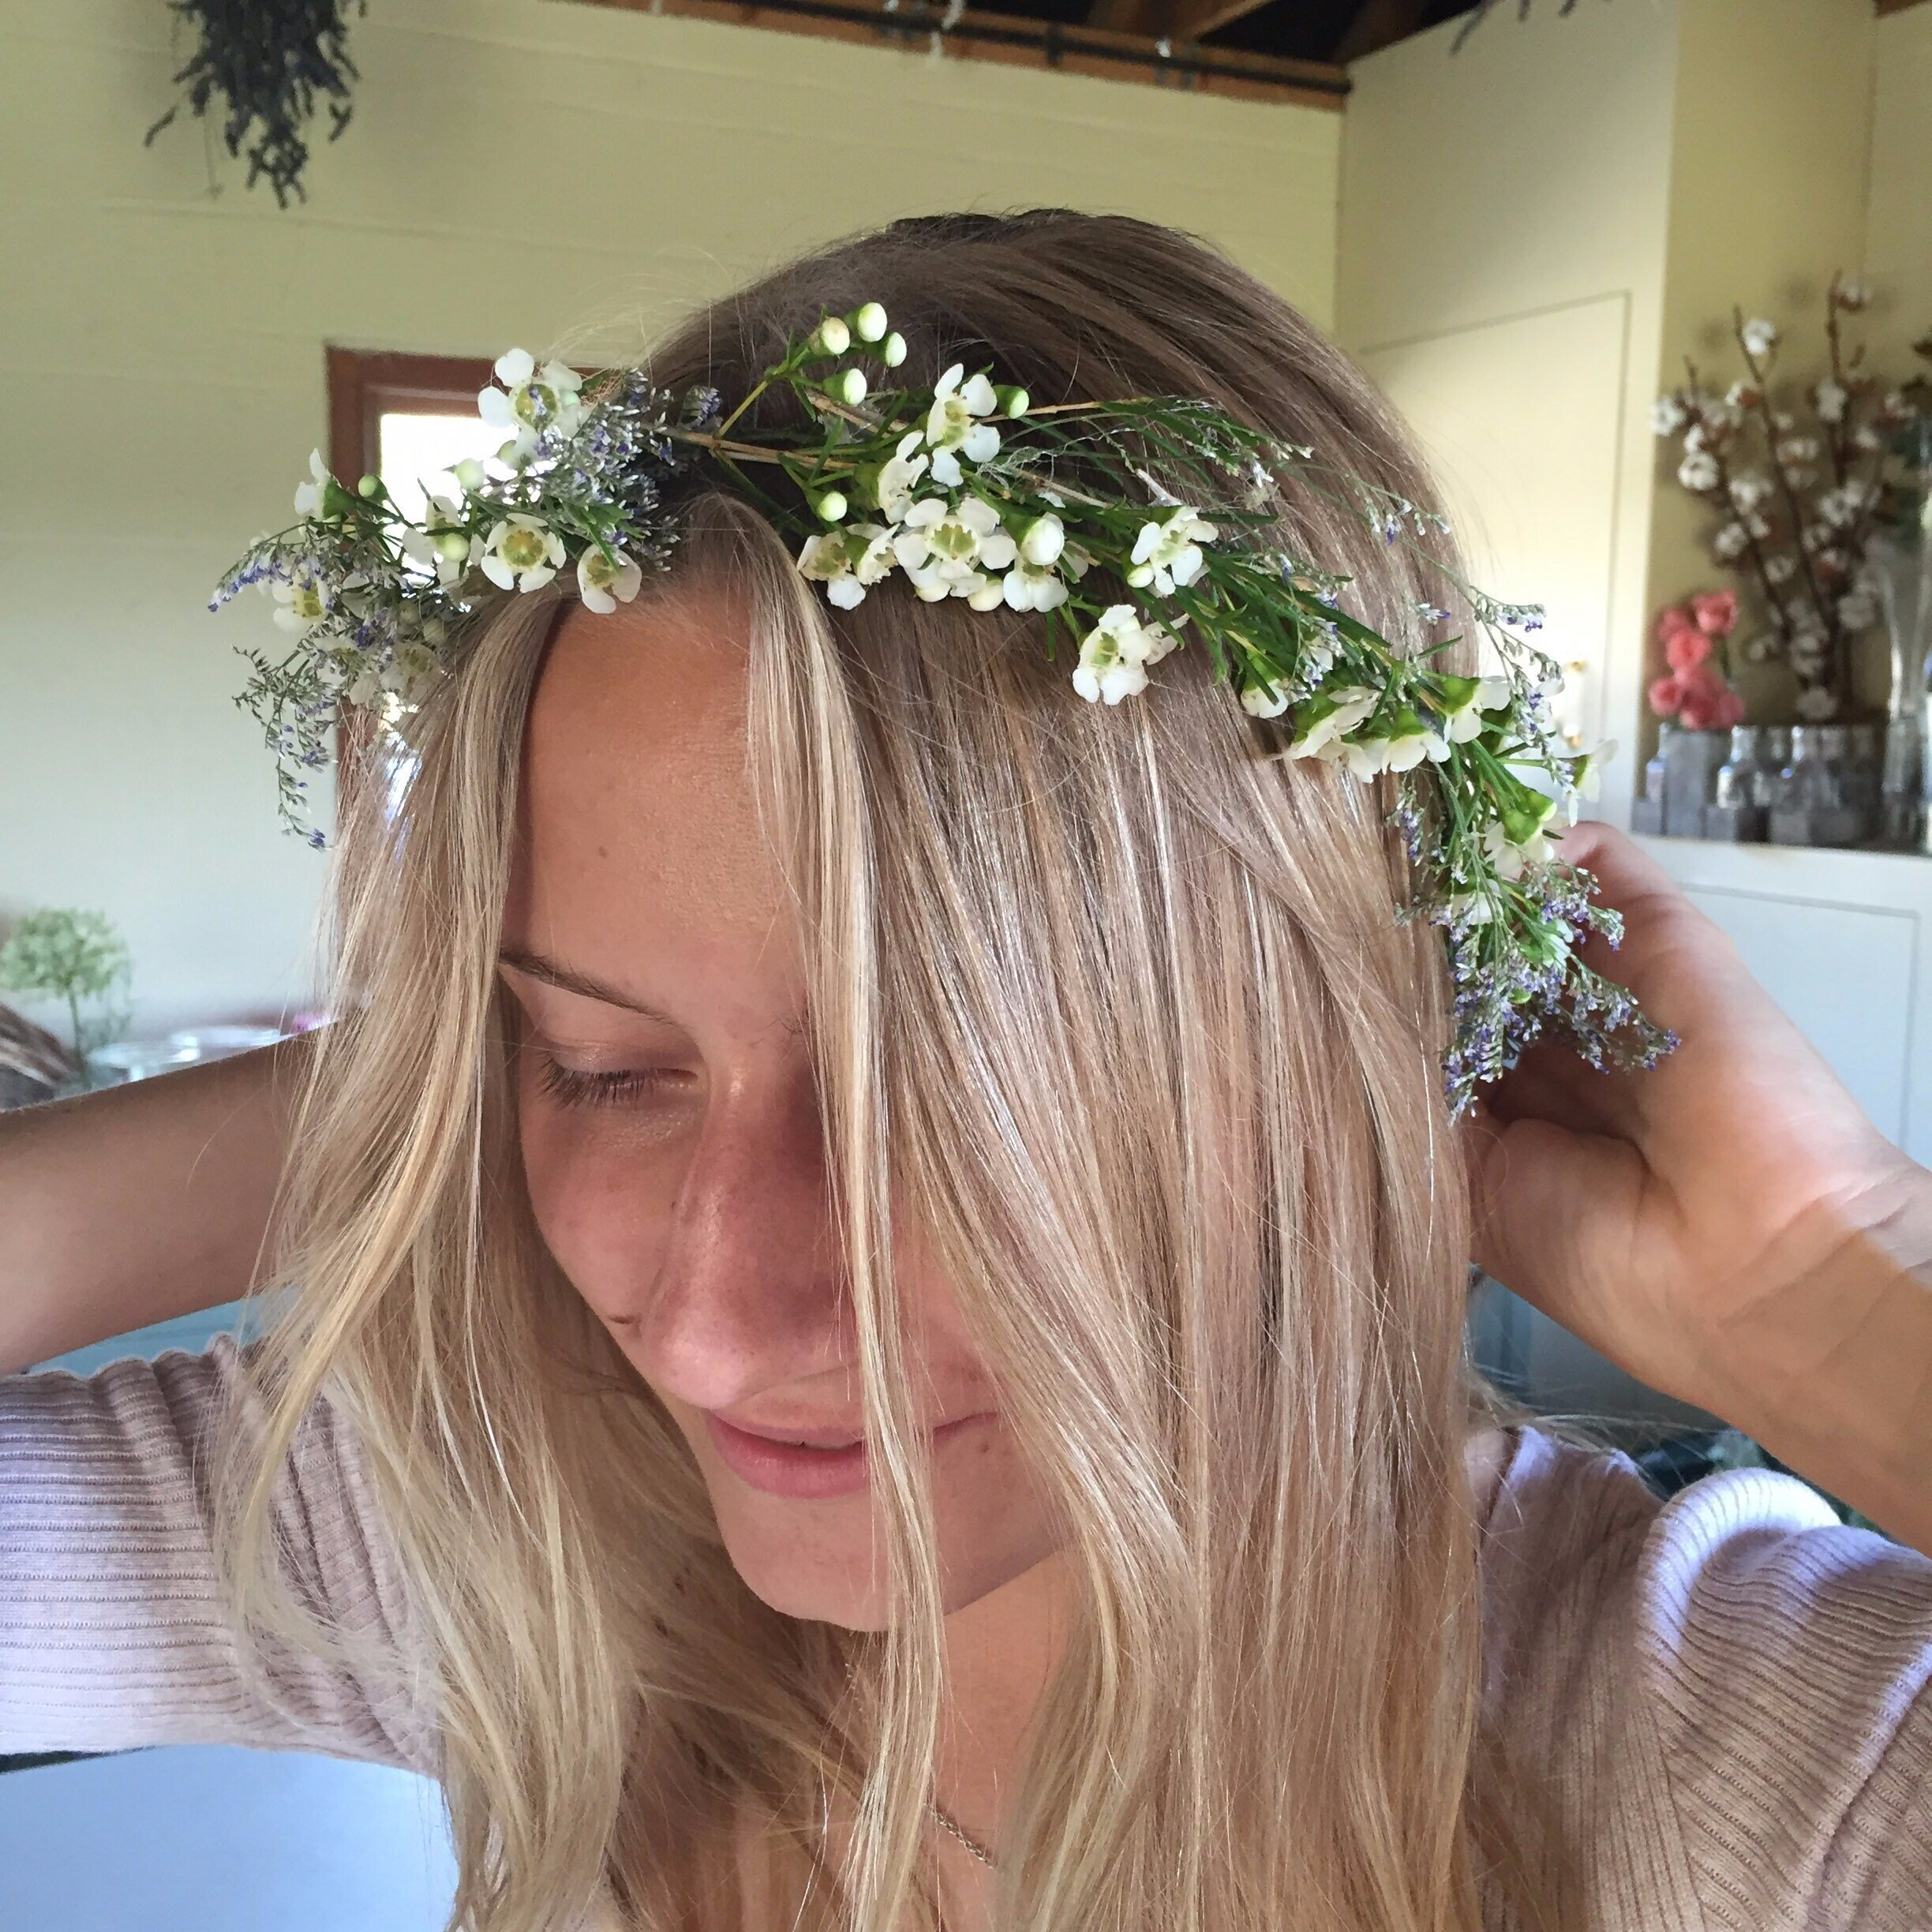 A most subtle flower crown using wax flower, perfect for a bride